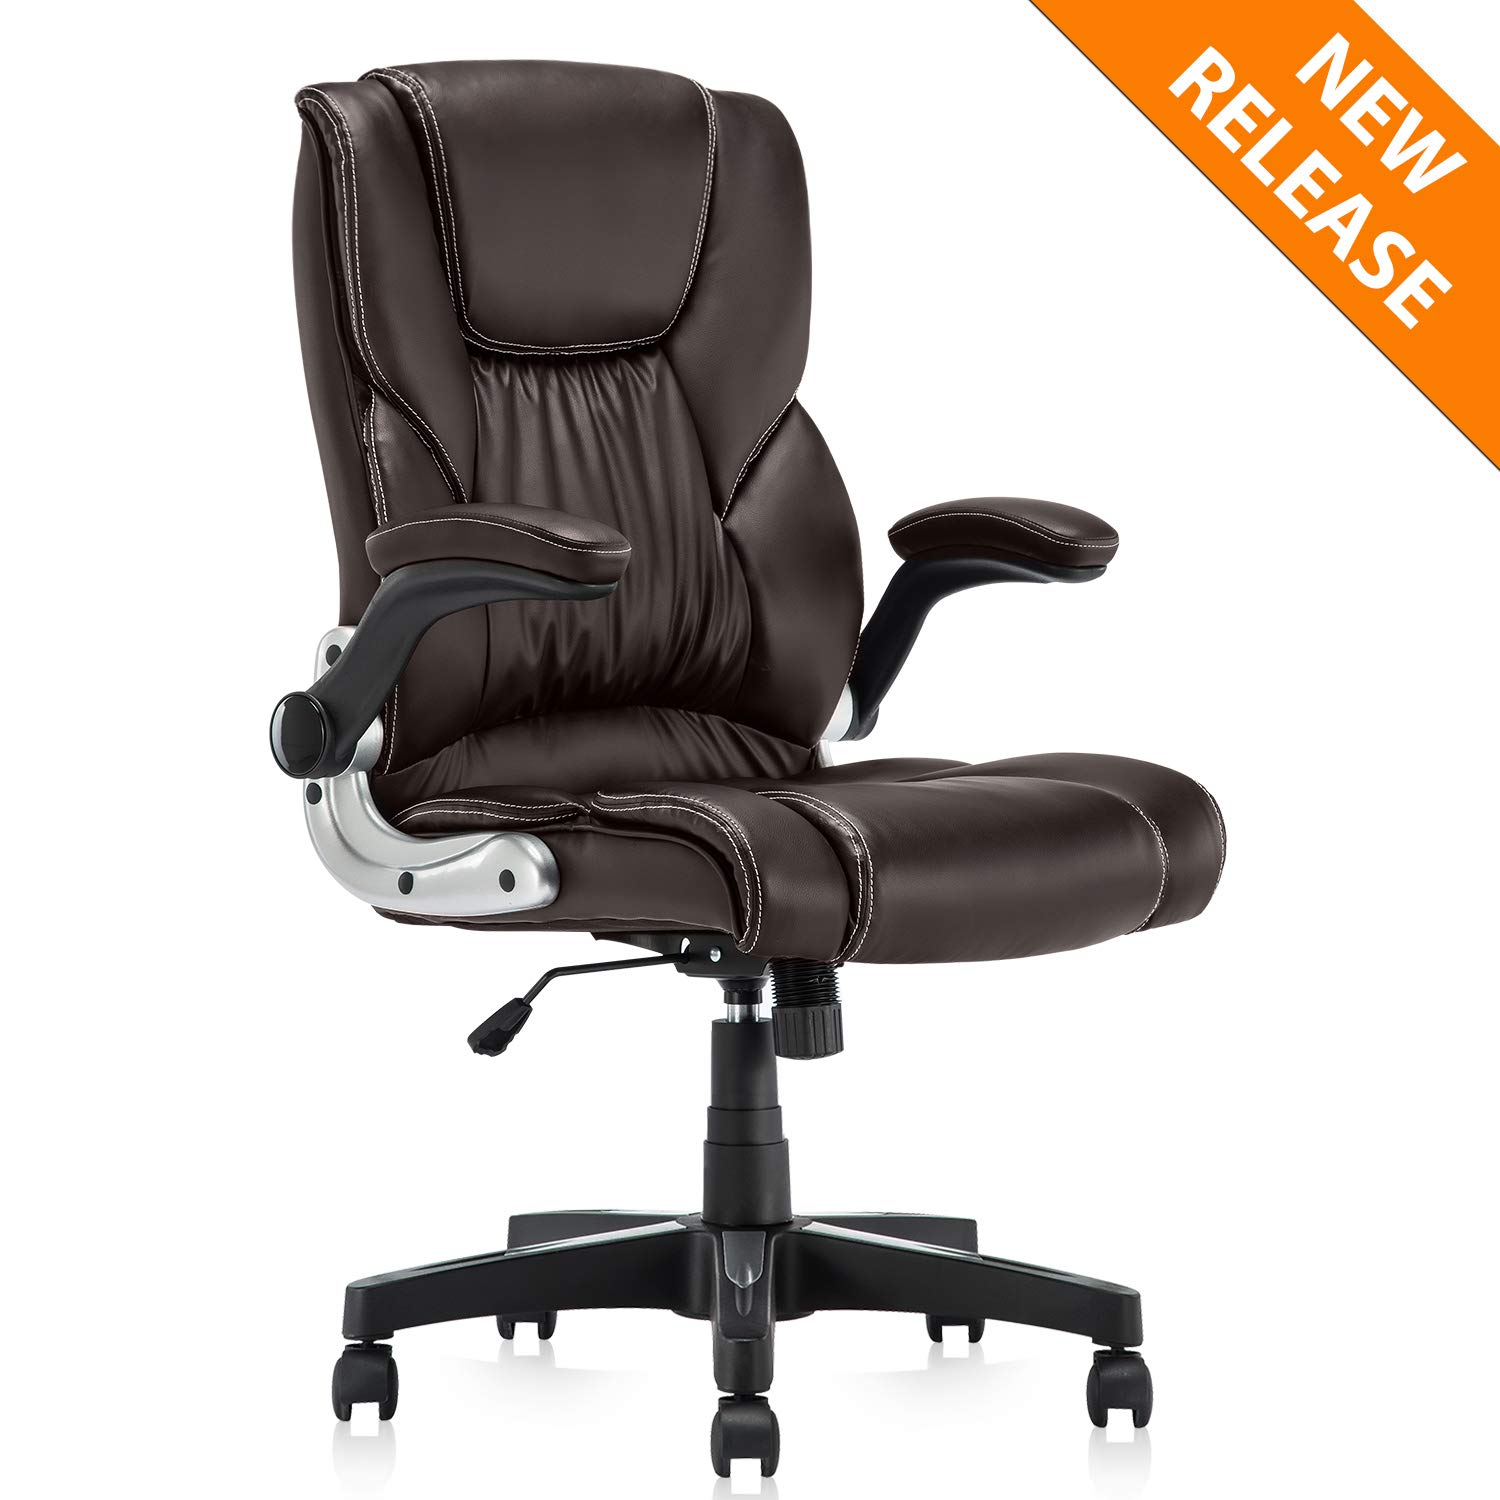 Brilliant Yamasoro Ergonomic Office Chair With Flip Up Arms And Wheels Executive Office Desk Chairs Leather Black Computer Chairs Download Free Architecture Designs Terchretrmadebymaigaardcom